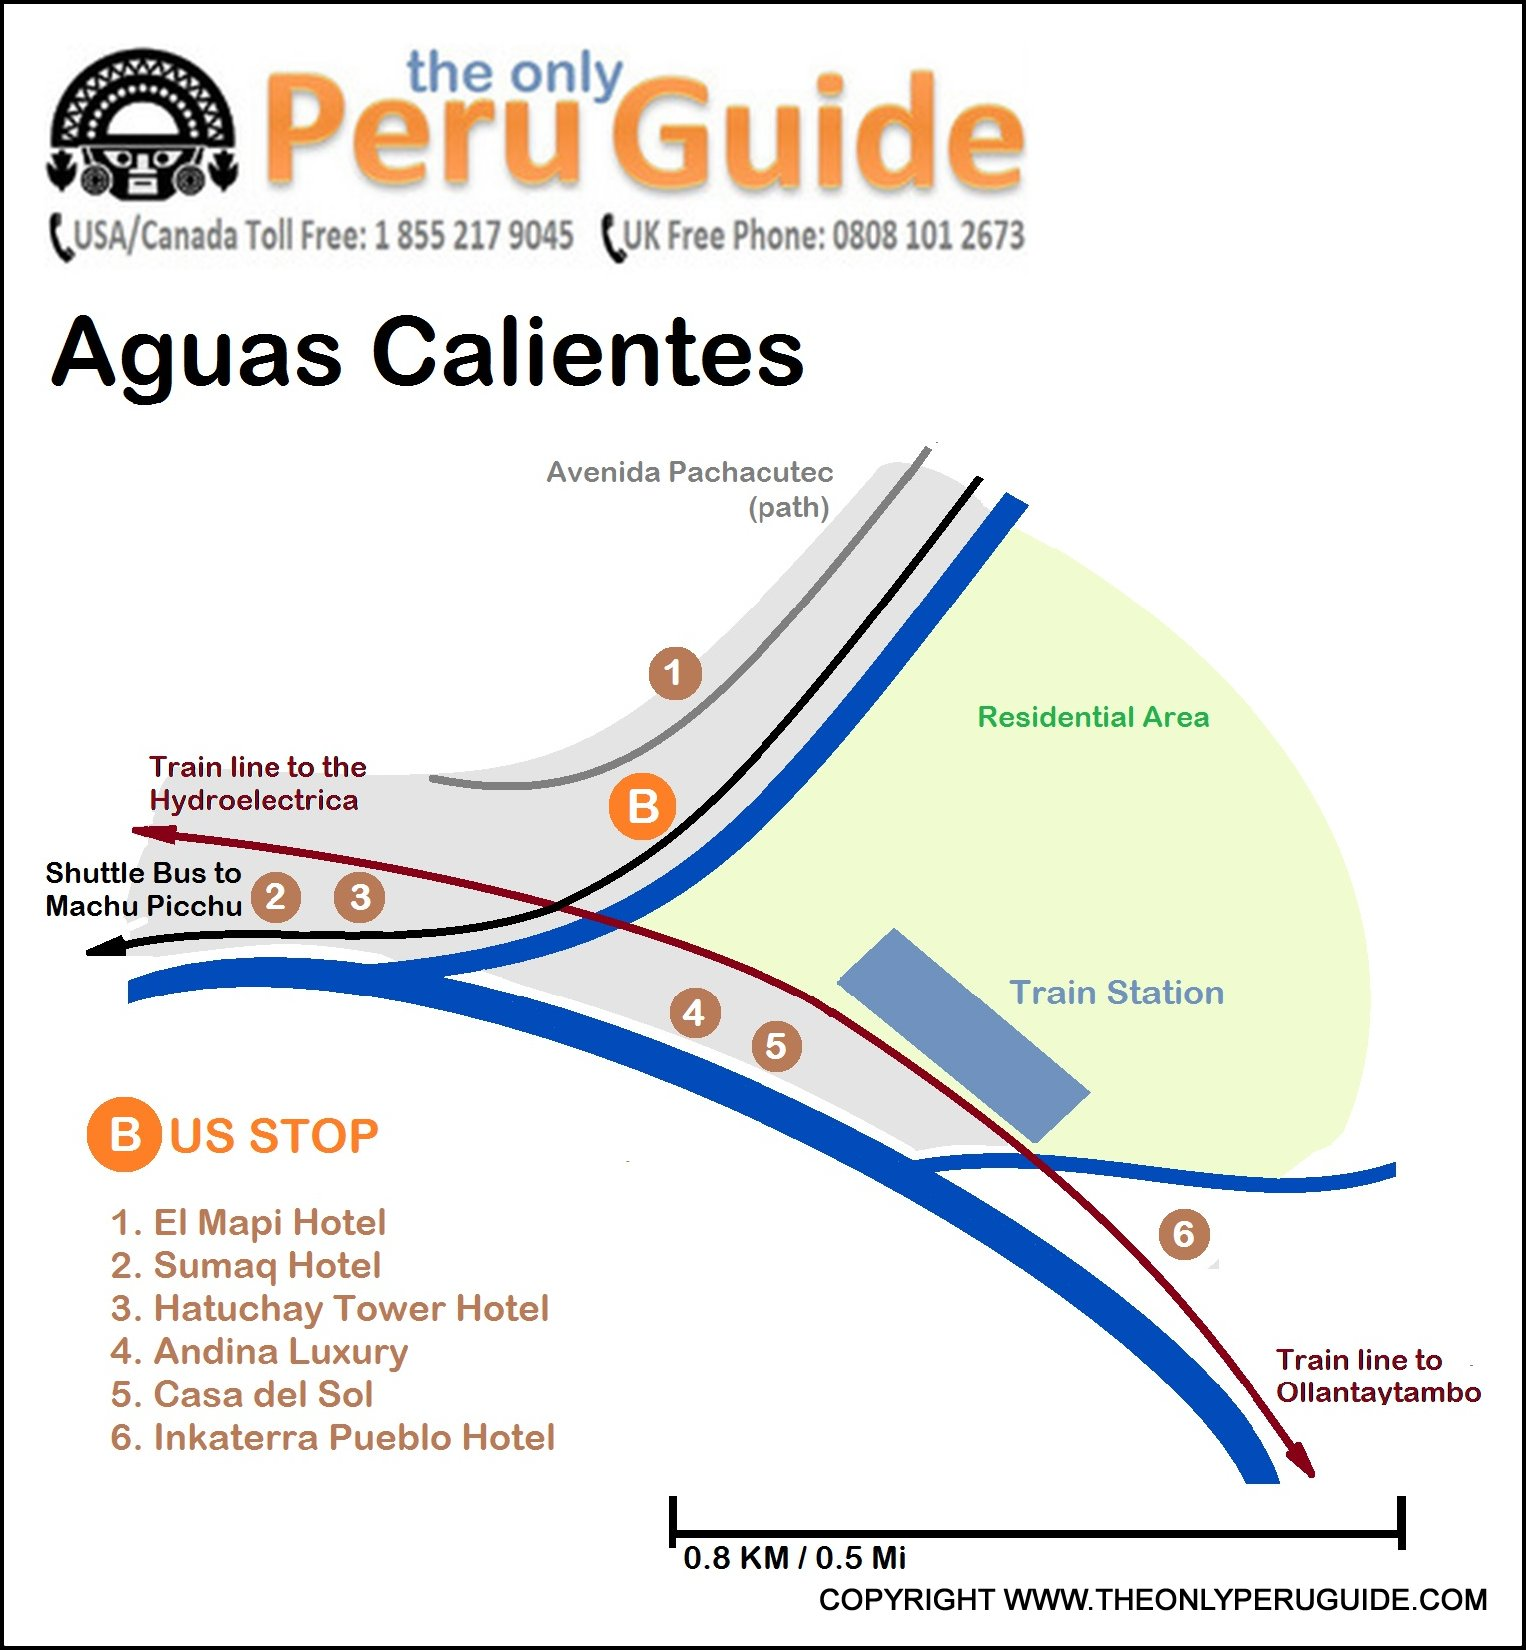 Map: Location of bus stop in Aguas Calientes